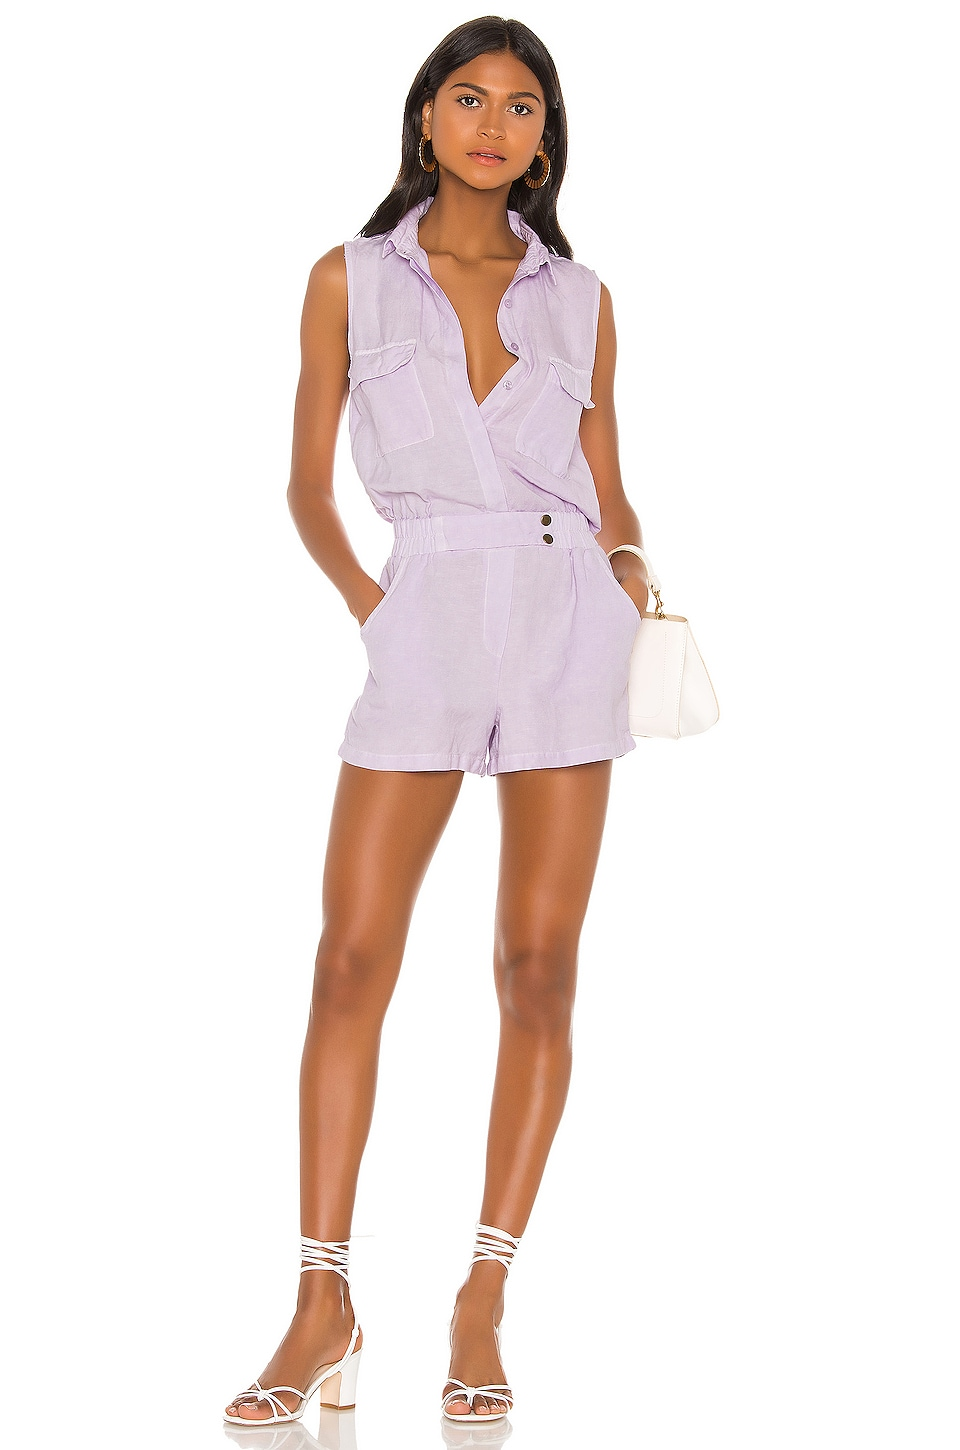 YFB CLOTHING X REVOLVE Christine Romper in Dark Lilac